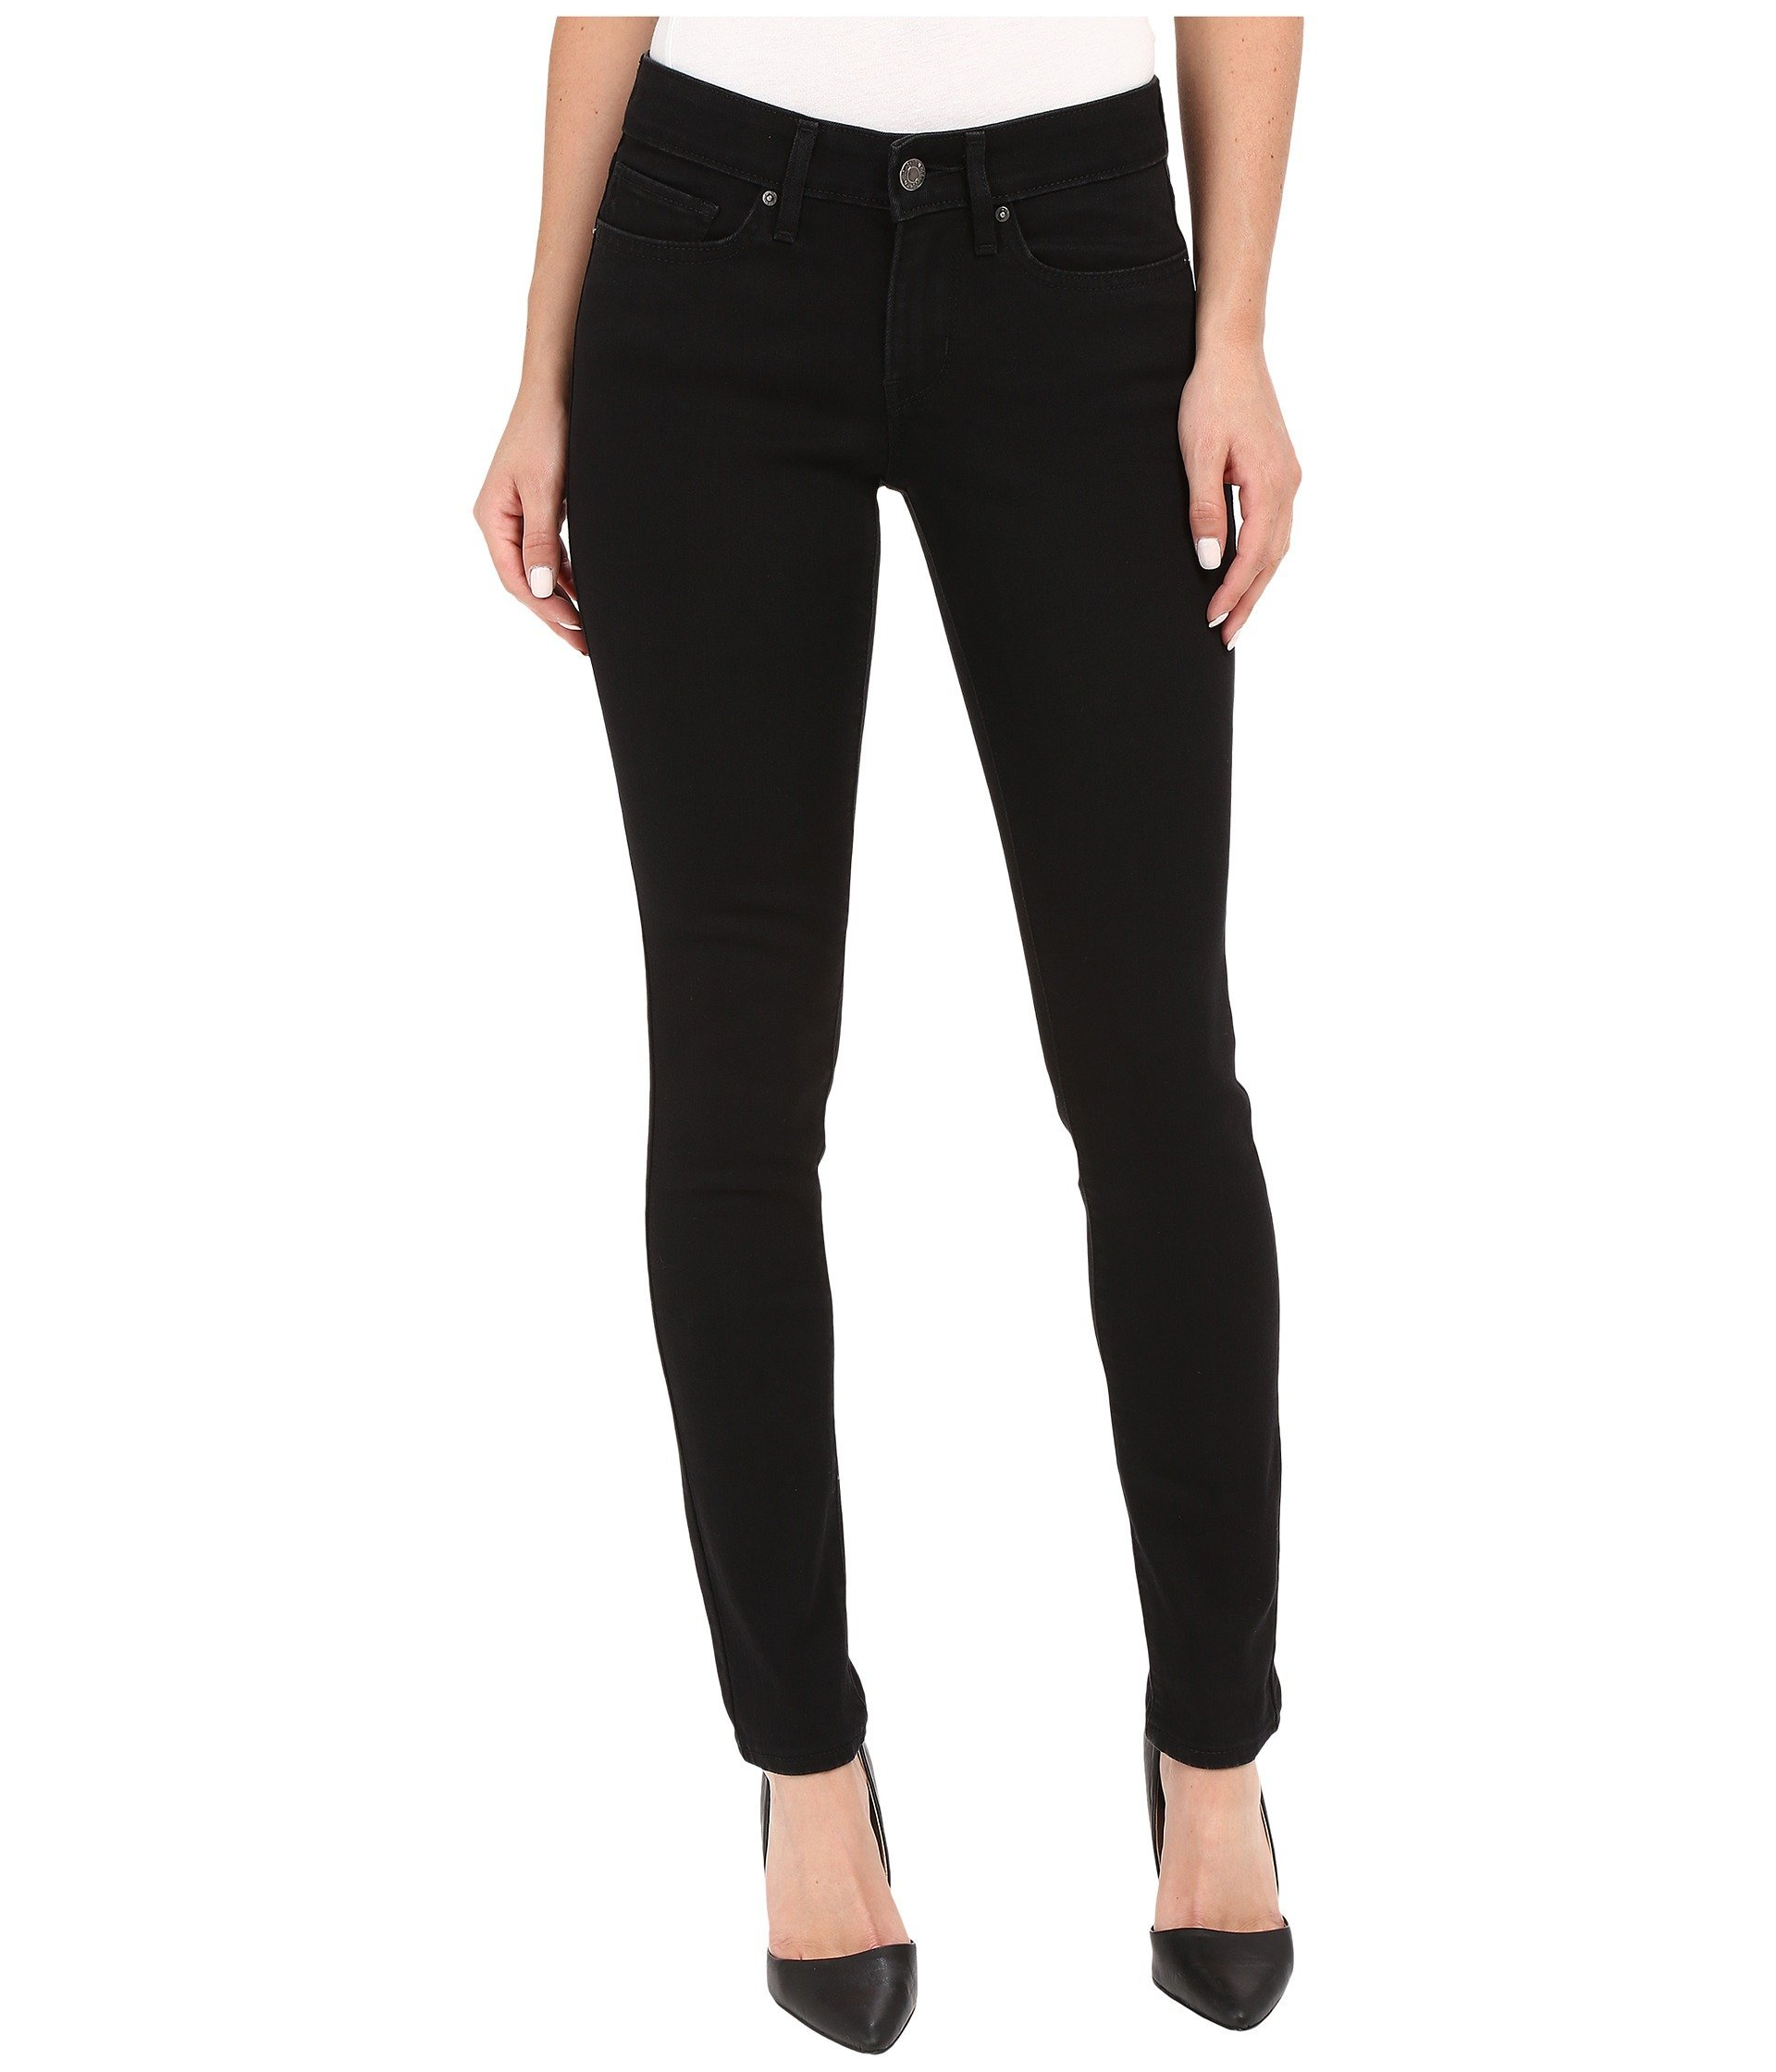 Levi's Women's 711 Skinny Jeans,Soft Black,28Wx30L by Levi's